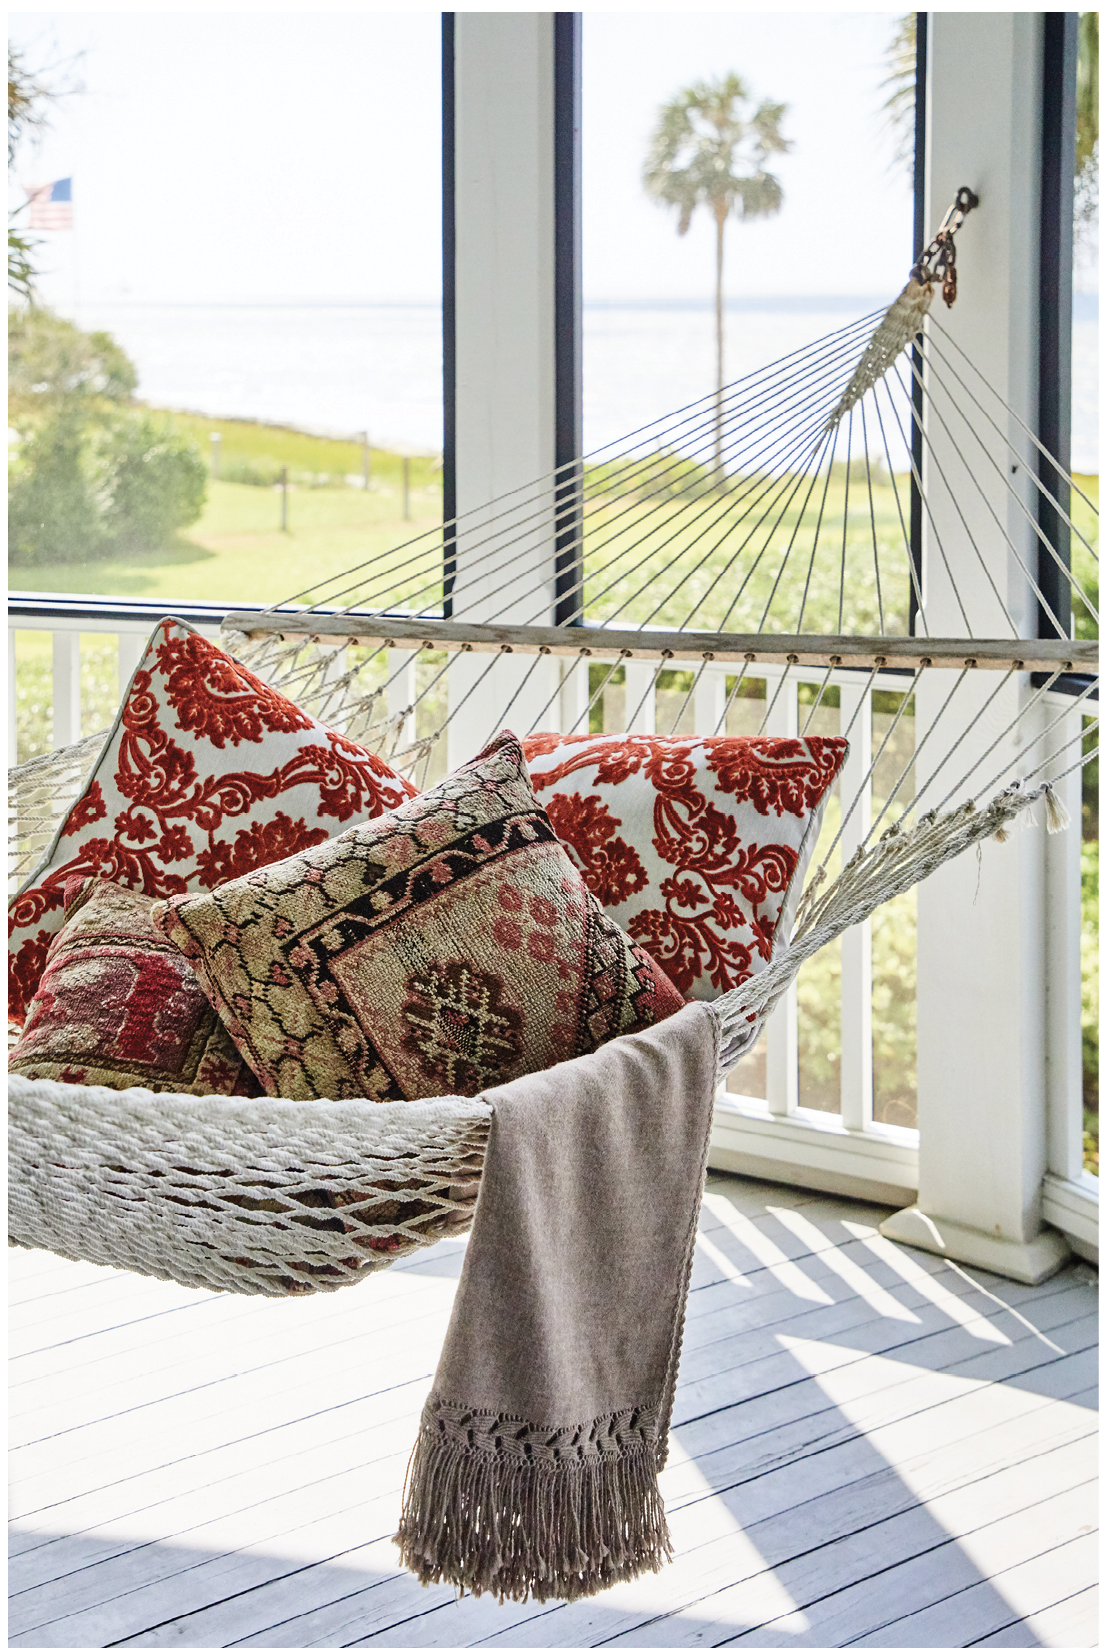 Plump pillows and a soft throw make this hammock an enviable post-meal napping spot.